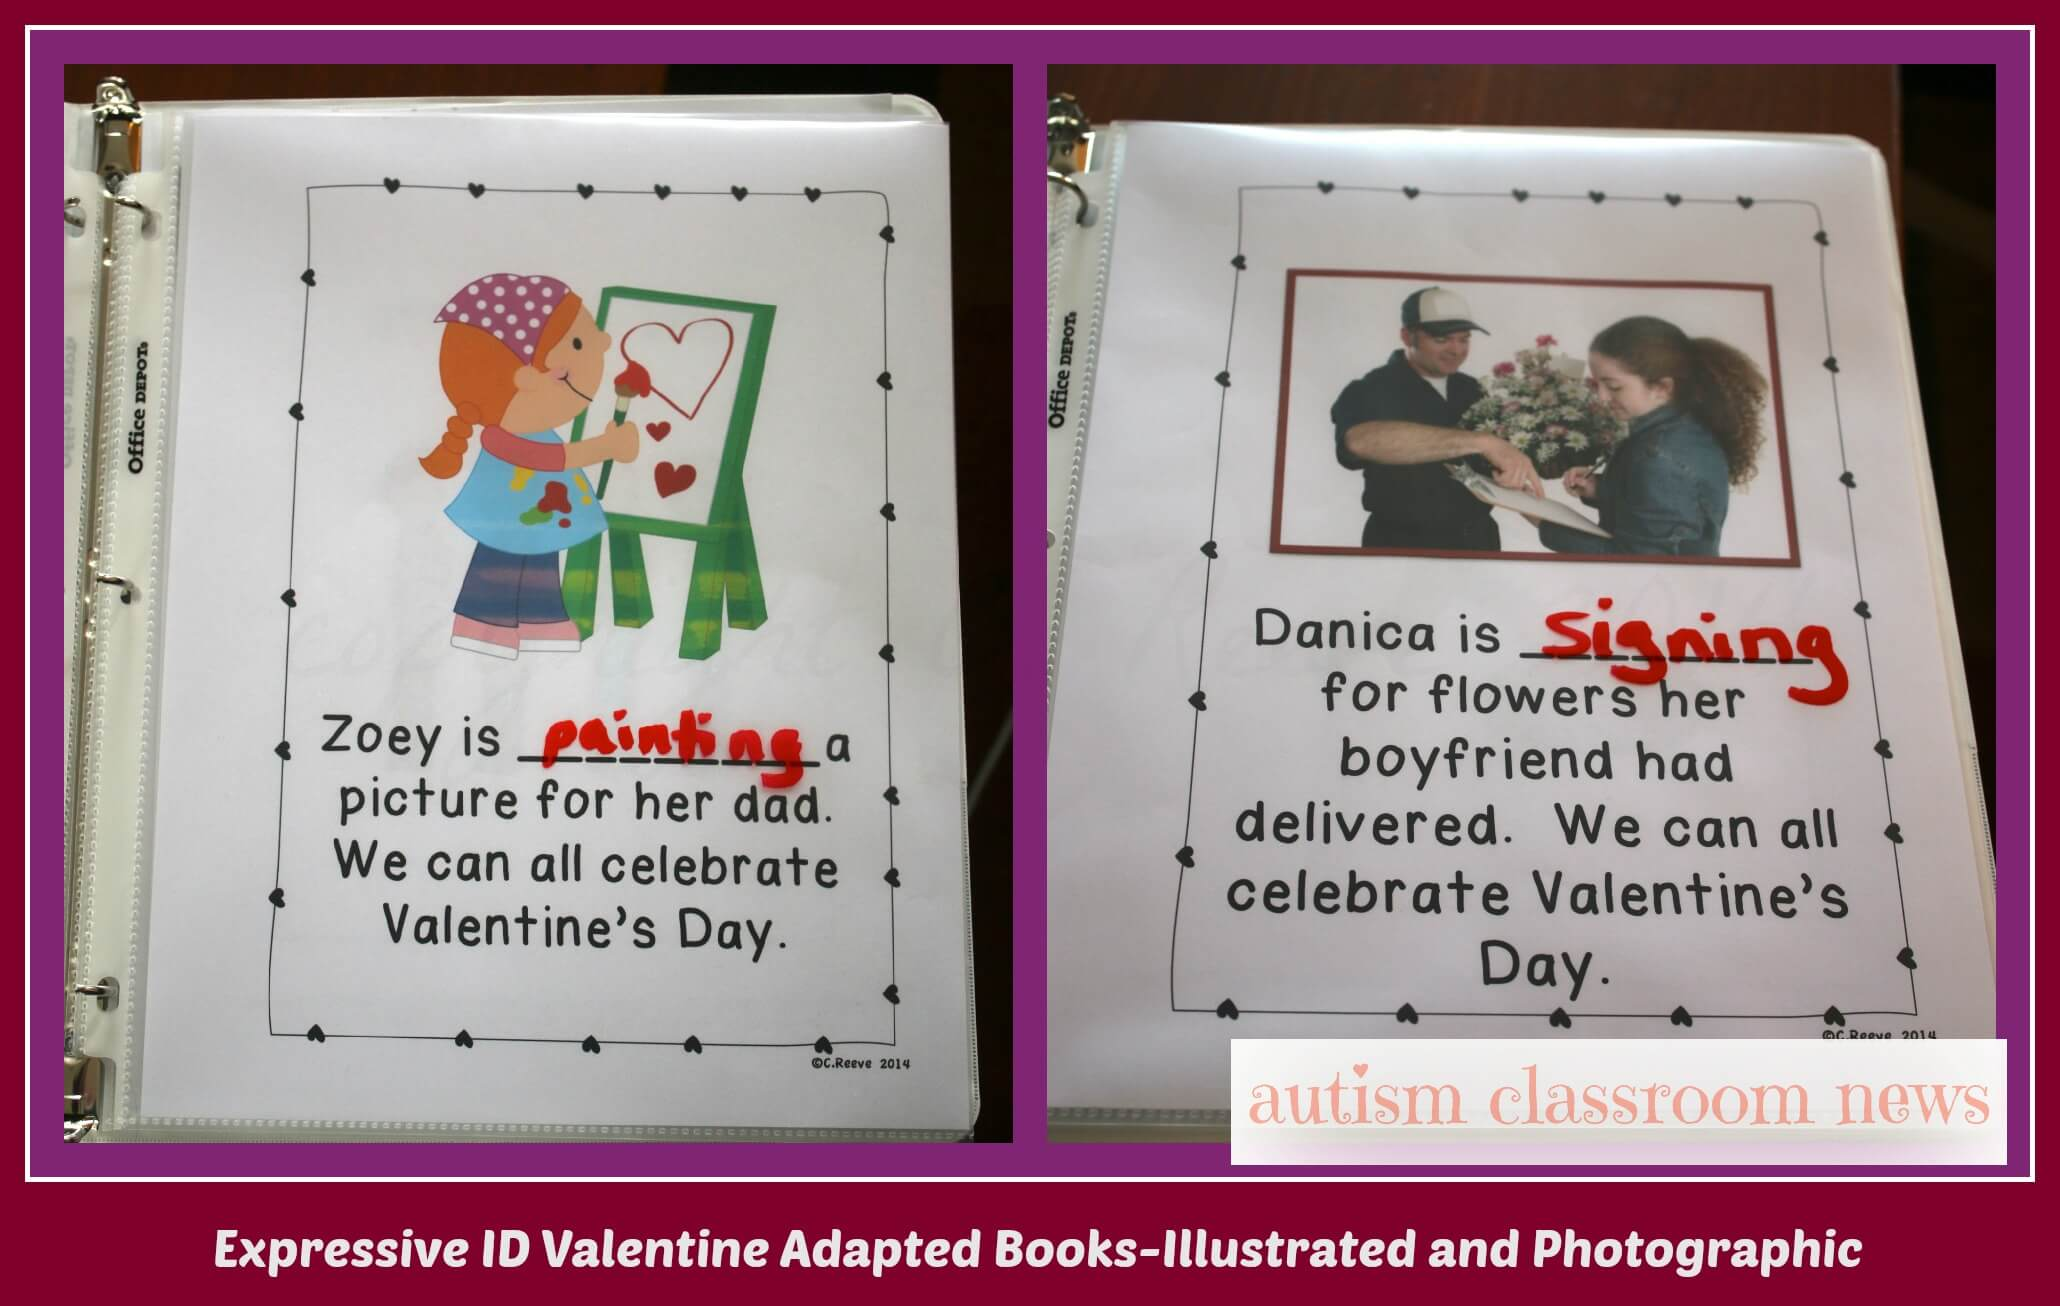 Valentine's Day interactive books with illustration page and photo page for expressive ID of verbs